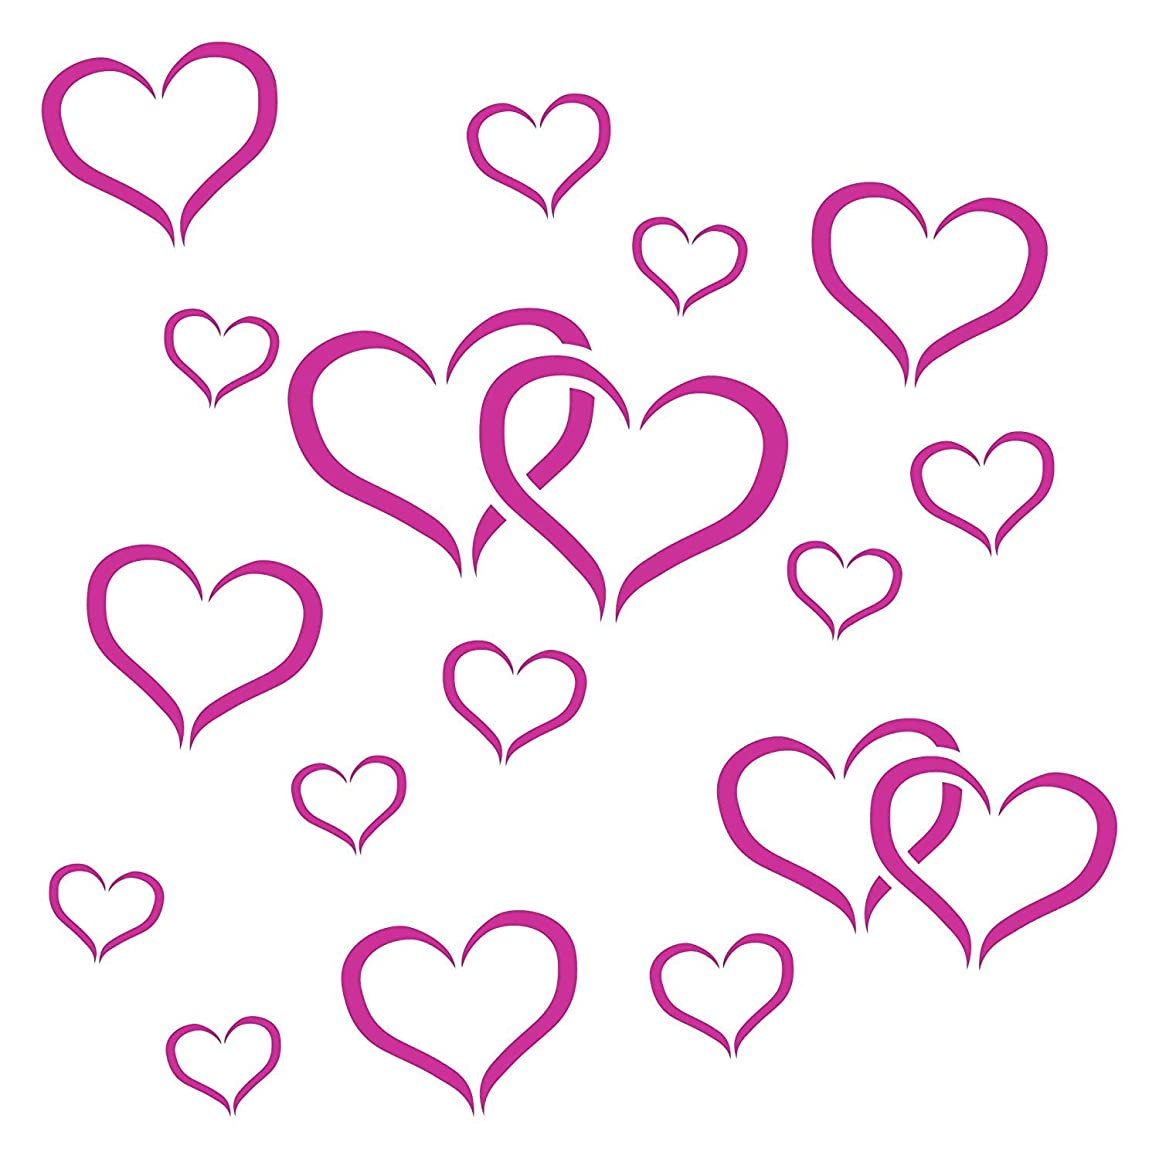 """LOVE HEARTS STENCIL (size 9""""w x 9""""h) Reusable Stencils for Painting - Best Quality Scrapbooking Valentines Ideas - Use on Walls, Floors, Fabrics, Glass, Wood, Posters, and More…"""